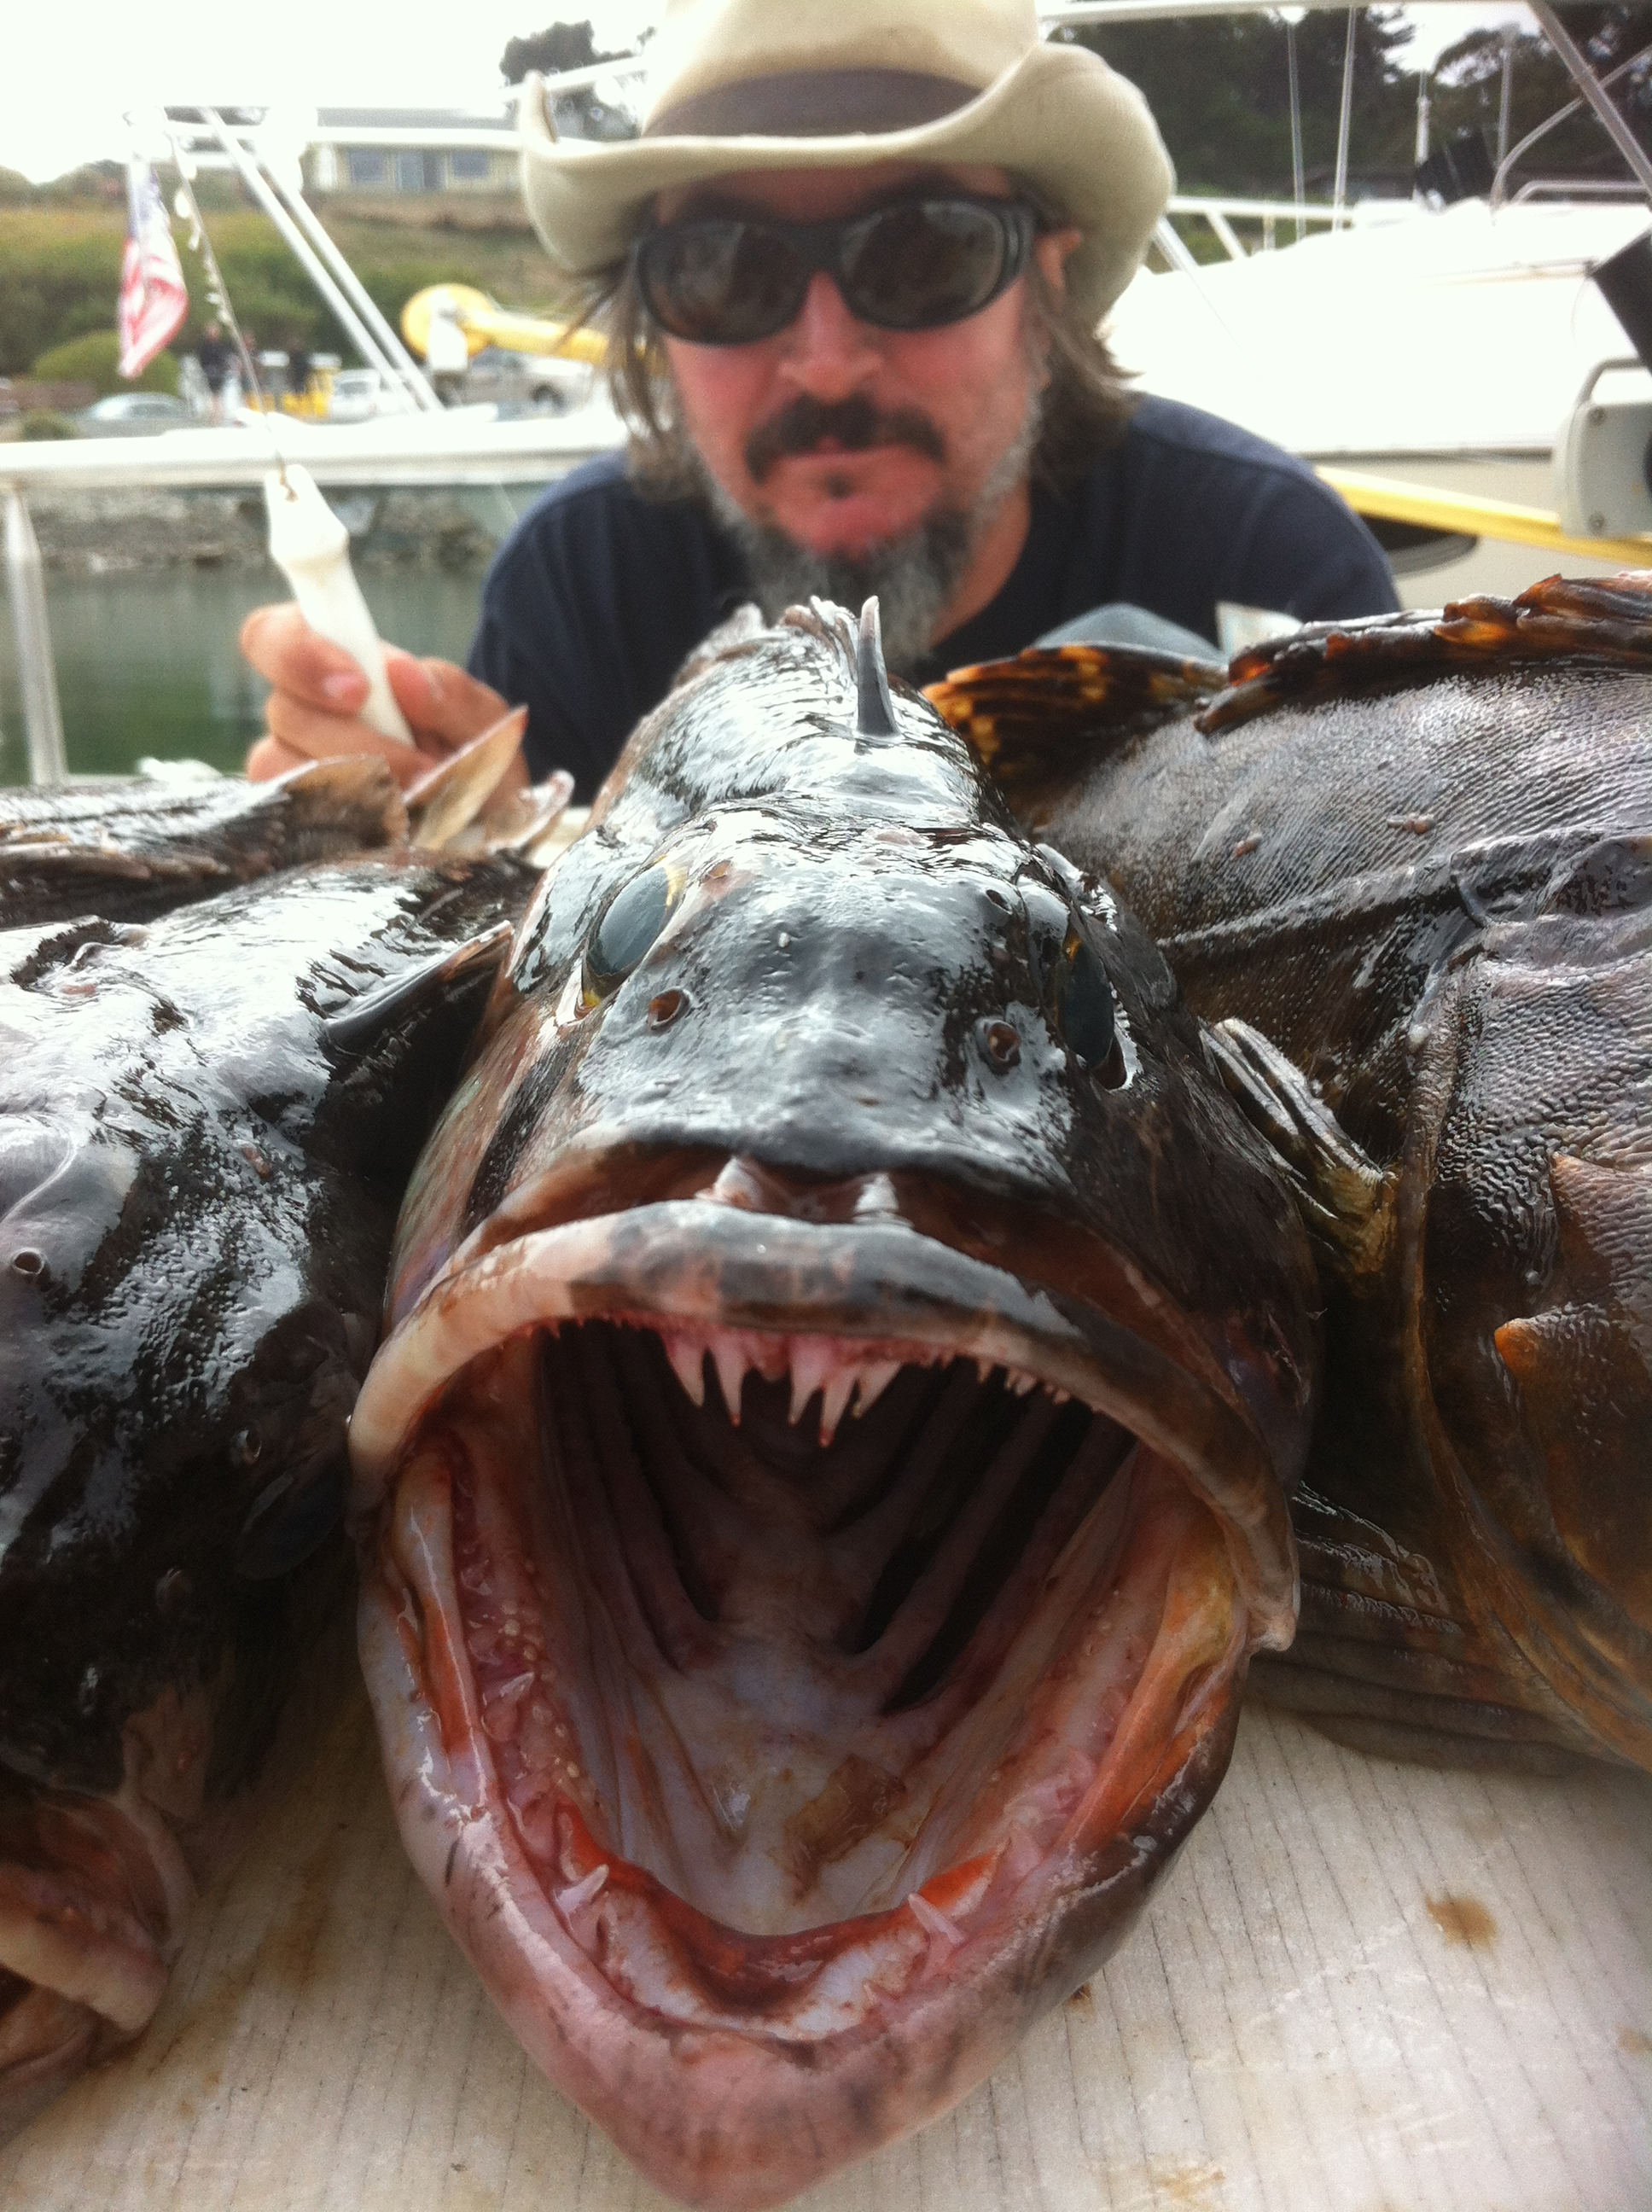 Fishing with les claypool 8 15 2012 mickey 39 s guide for Sfbay fishing report